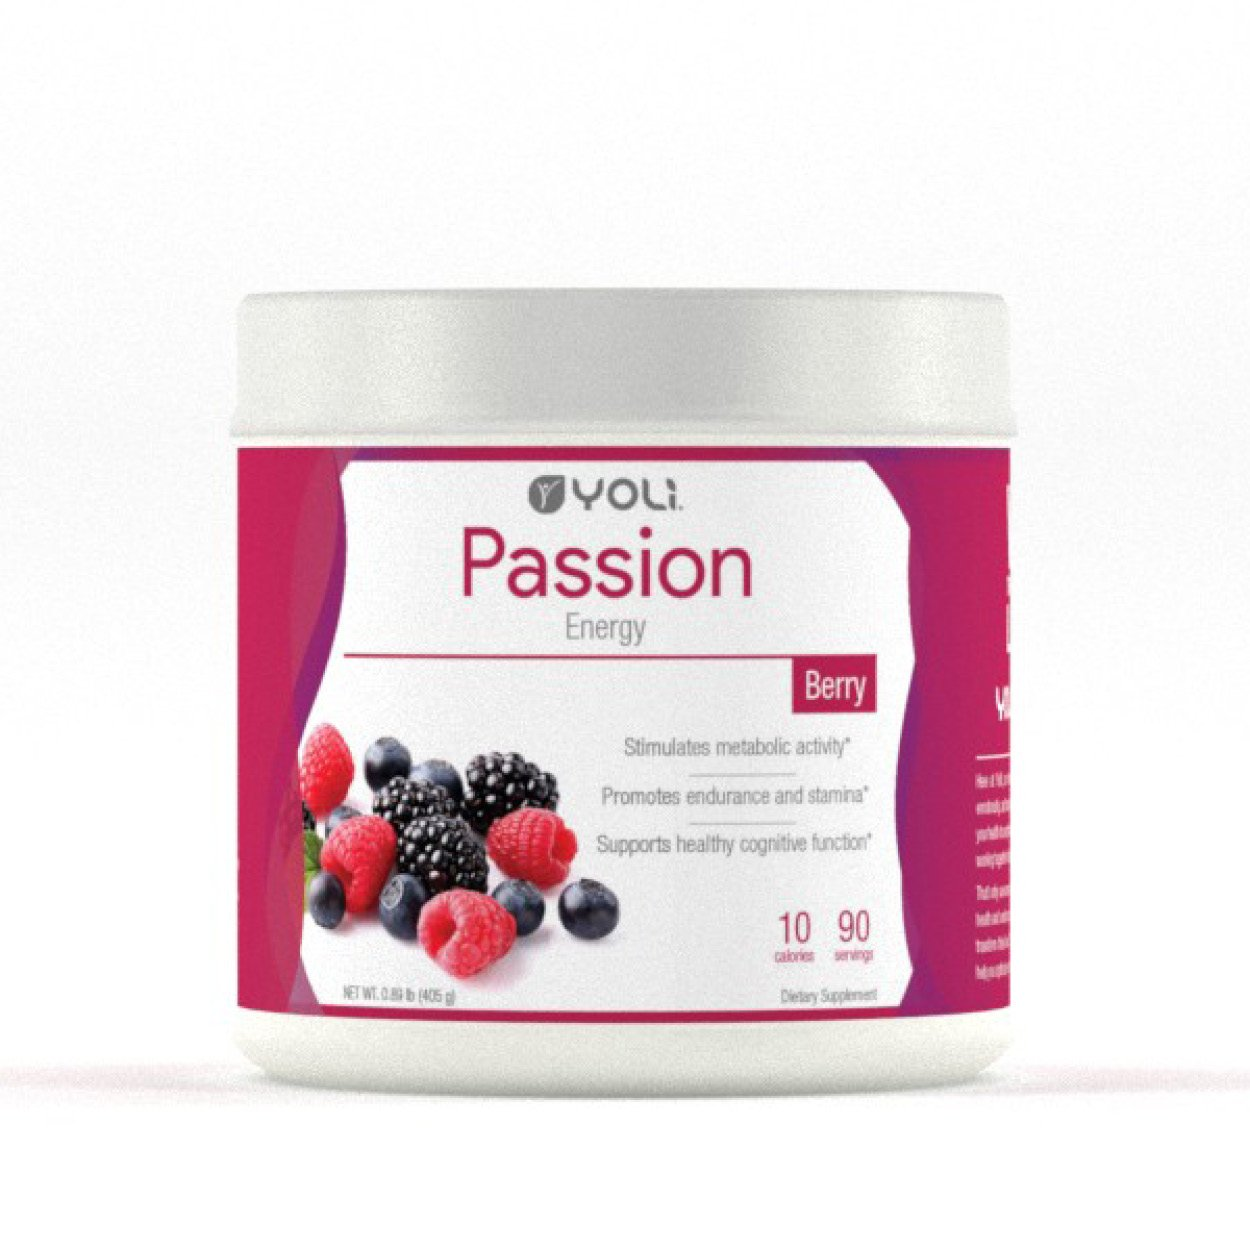 Yoli Passion Energy Drink - Sugar Free - Sweetwened with Stevia - Long Lasting Healthy Energy Without Jitters (Canister, Berry) by YOLI® (Image #1)